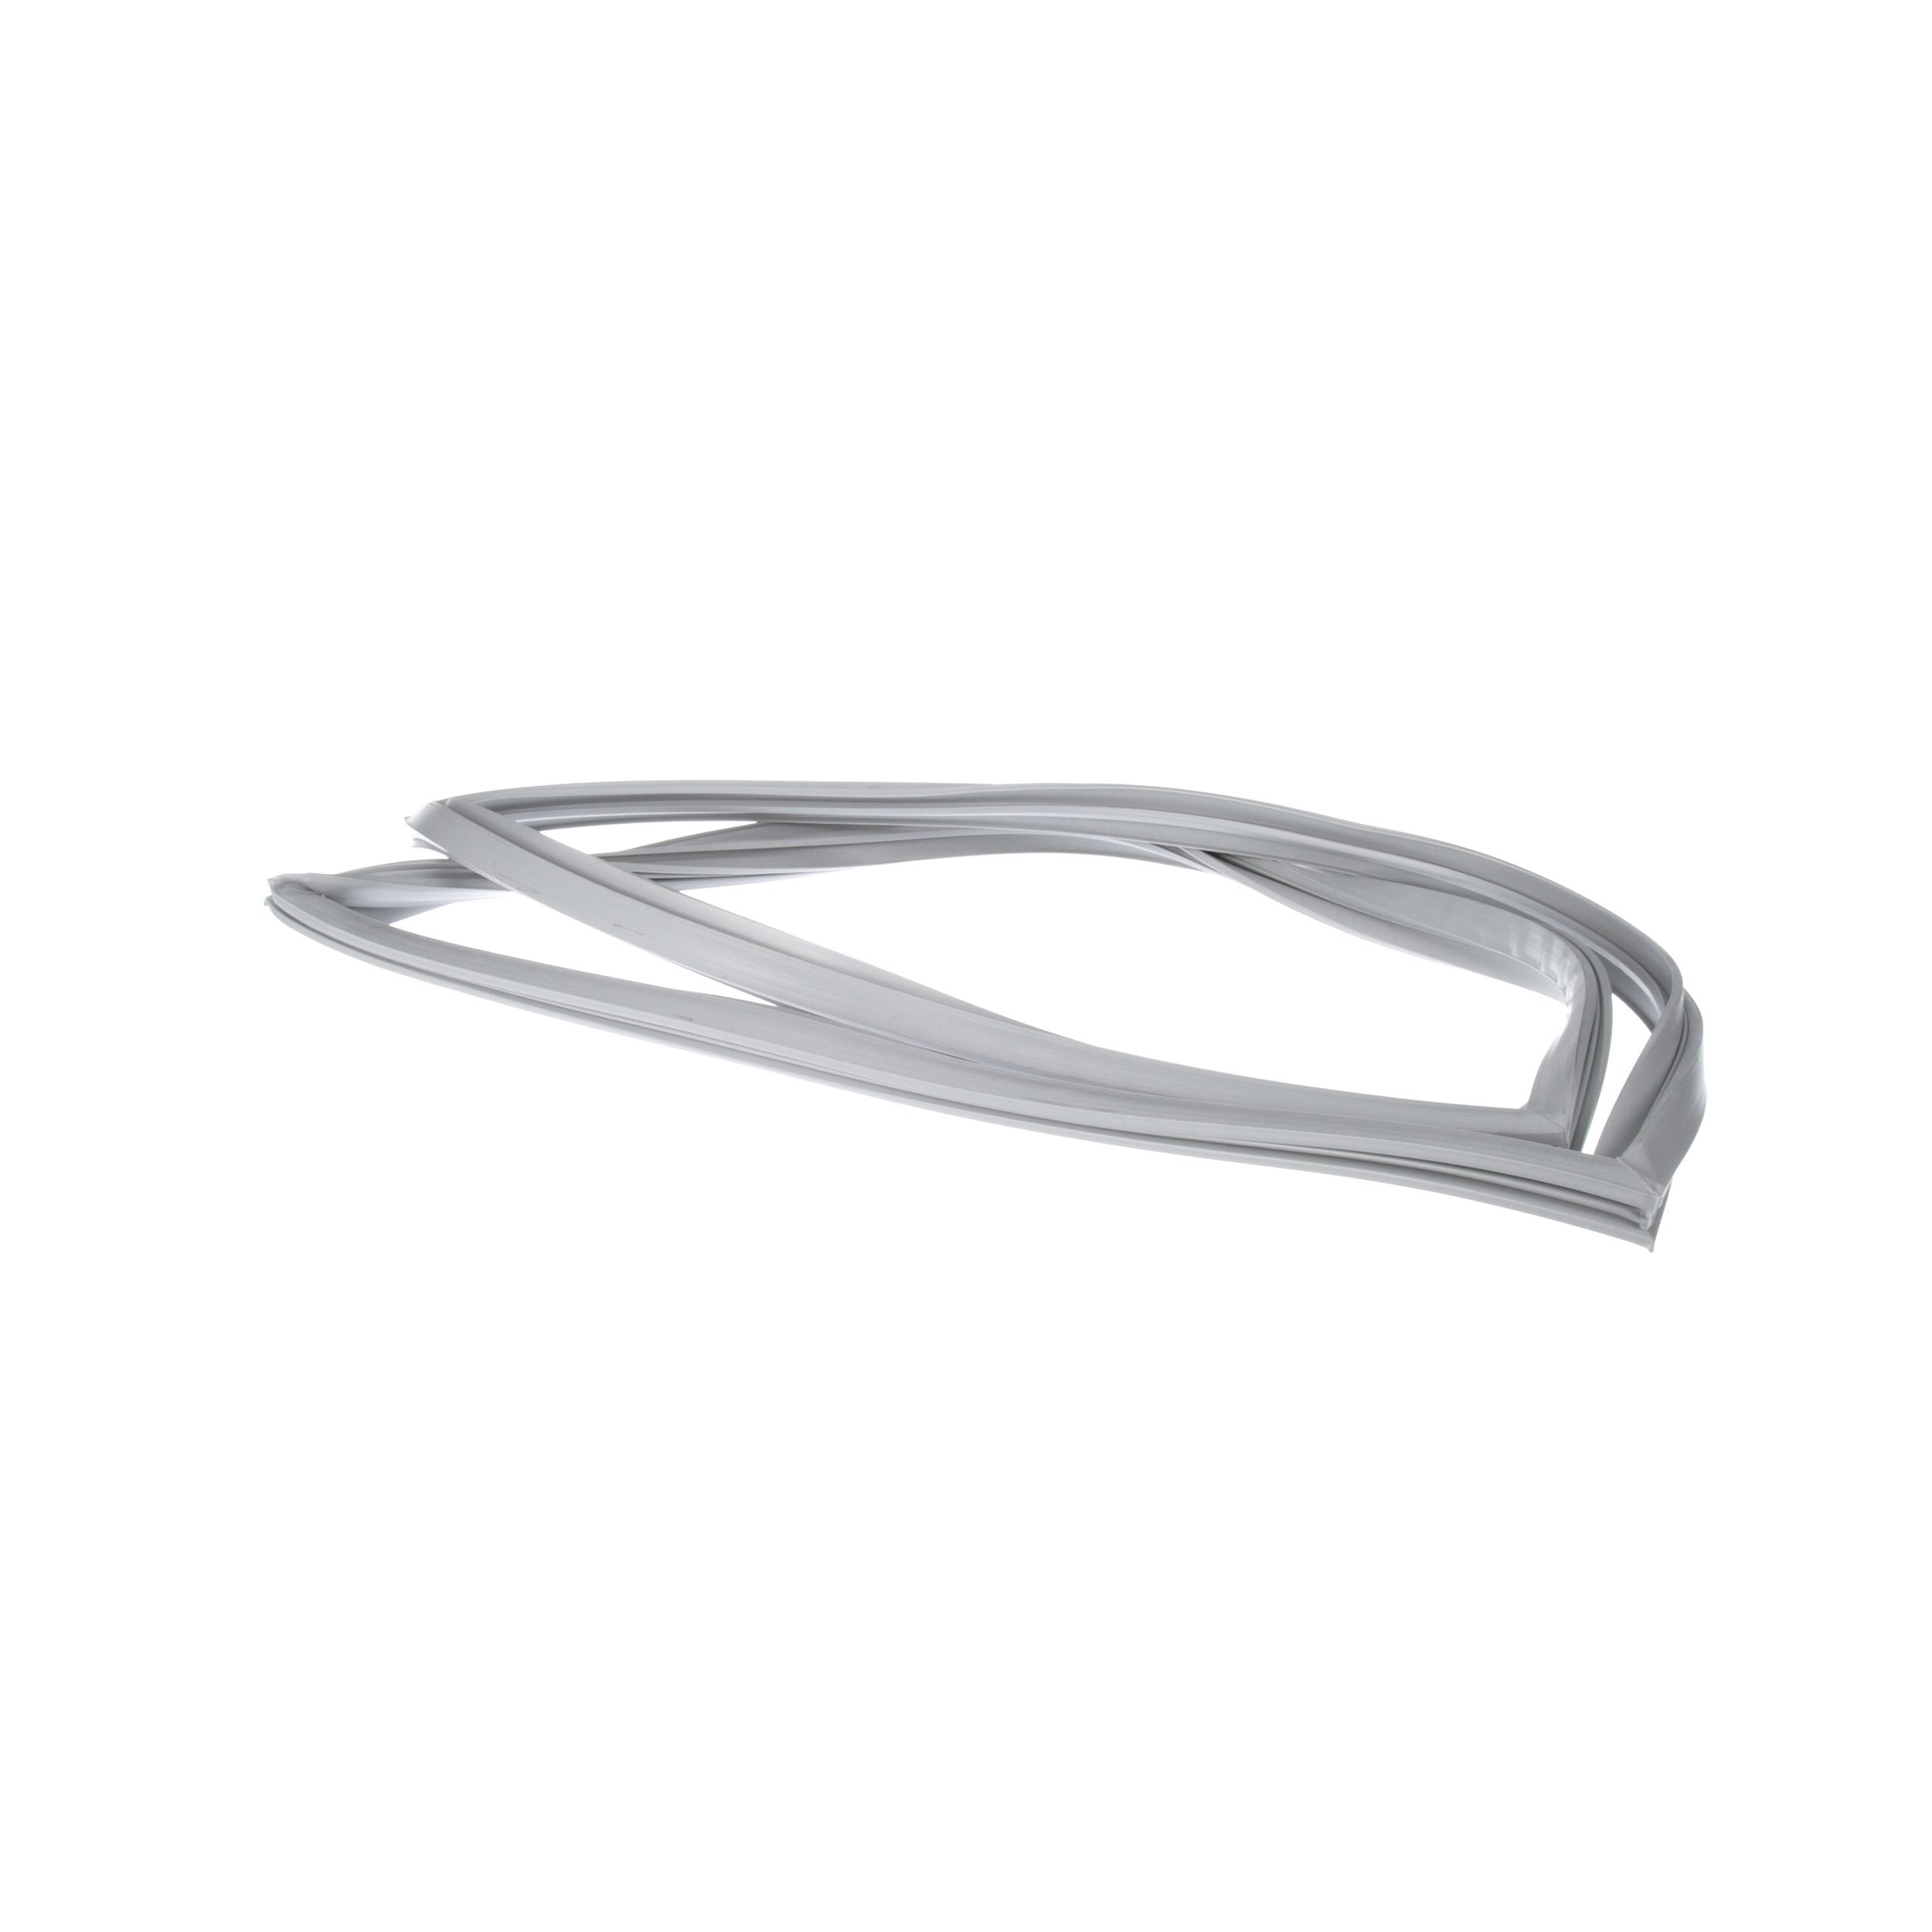 CONTINENTAL REFRIGERATOR GASKET 20 7/16 IN X 28 3/4